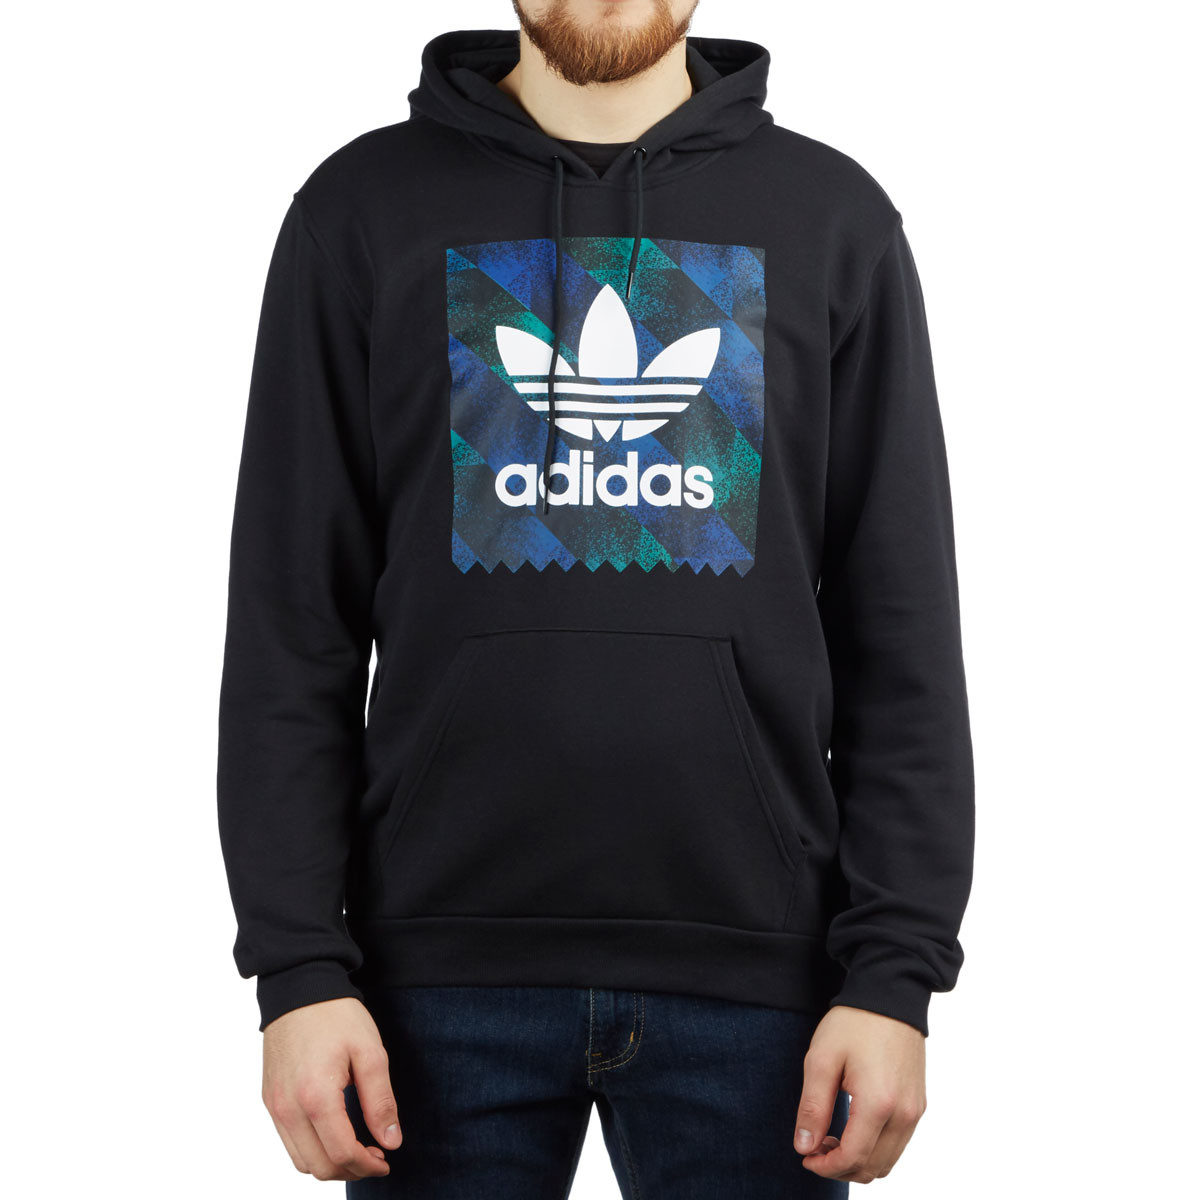 abacf1151 Adidas Towning Hoodie - Black/White/Action Blue/Action Green